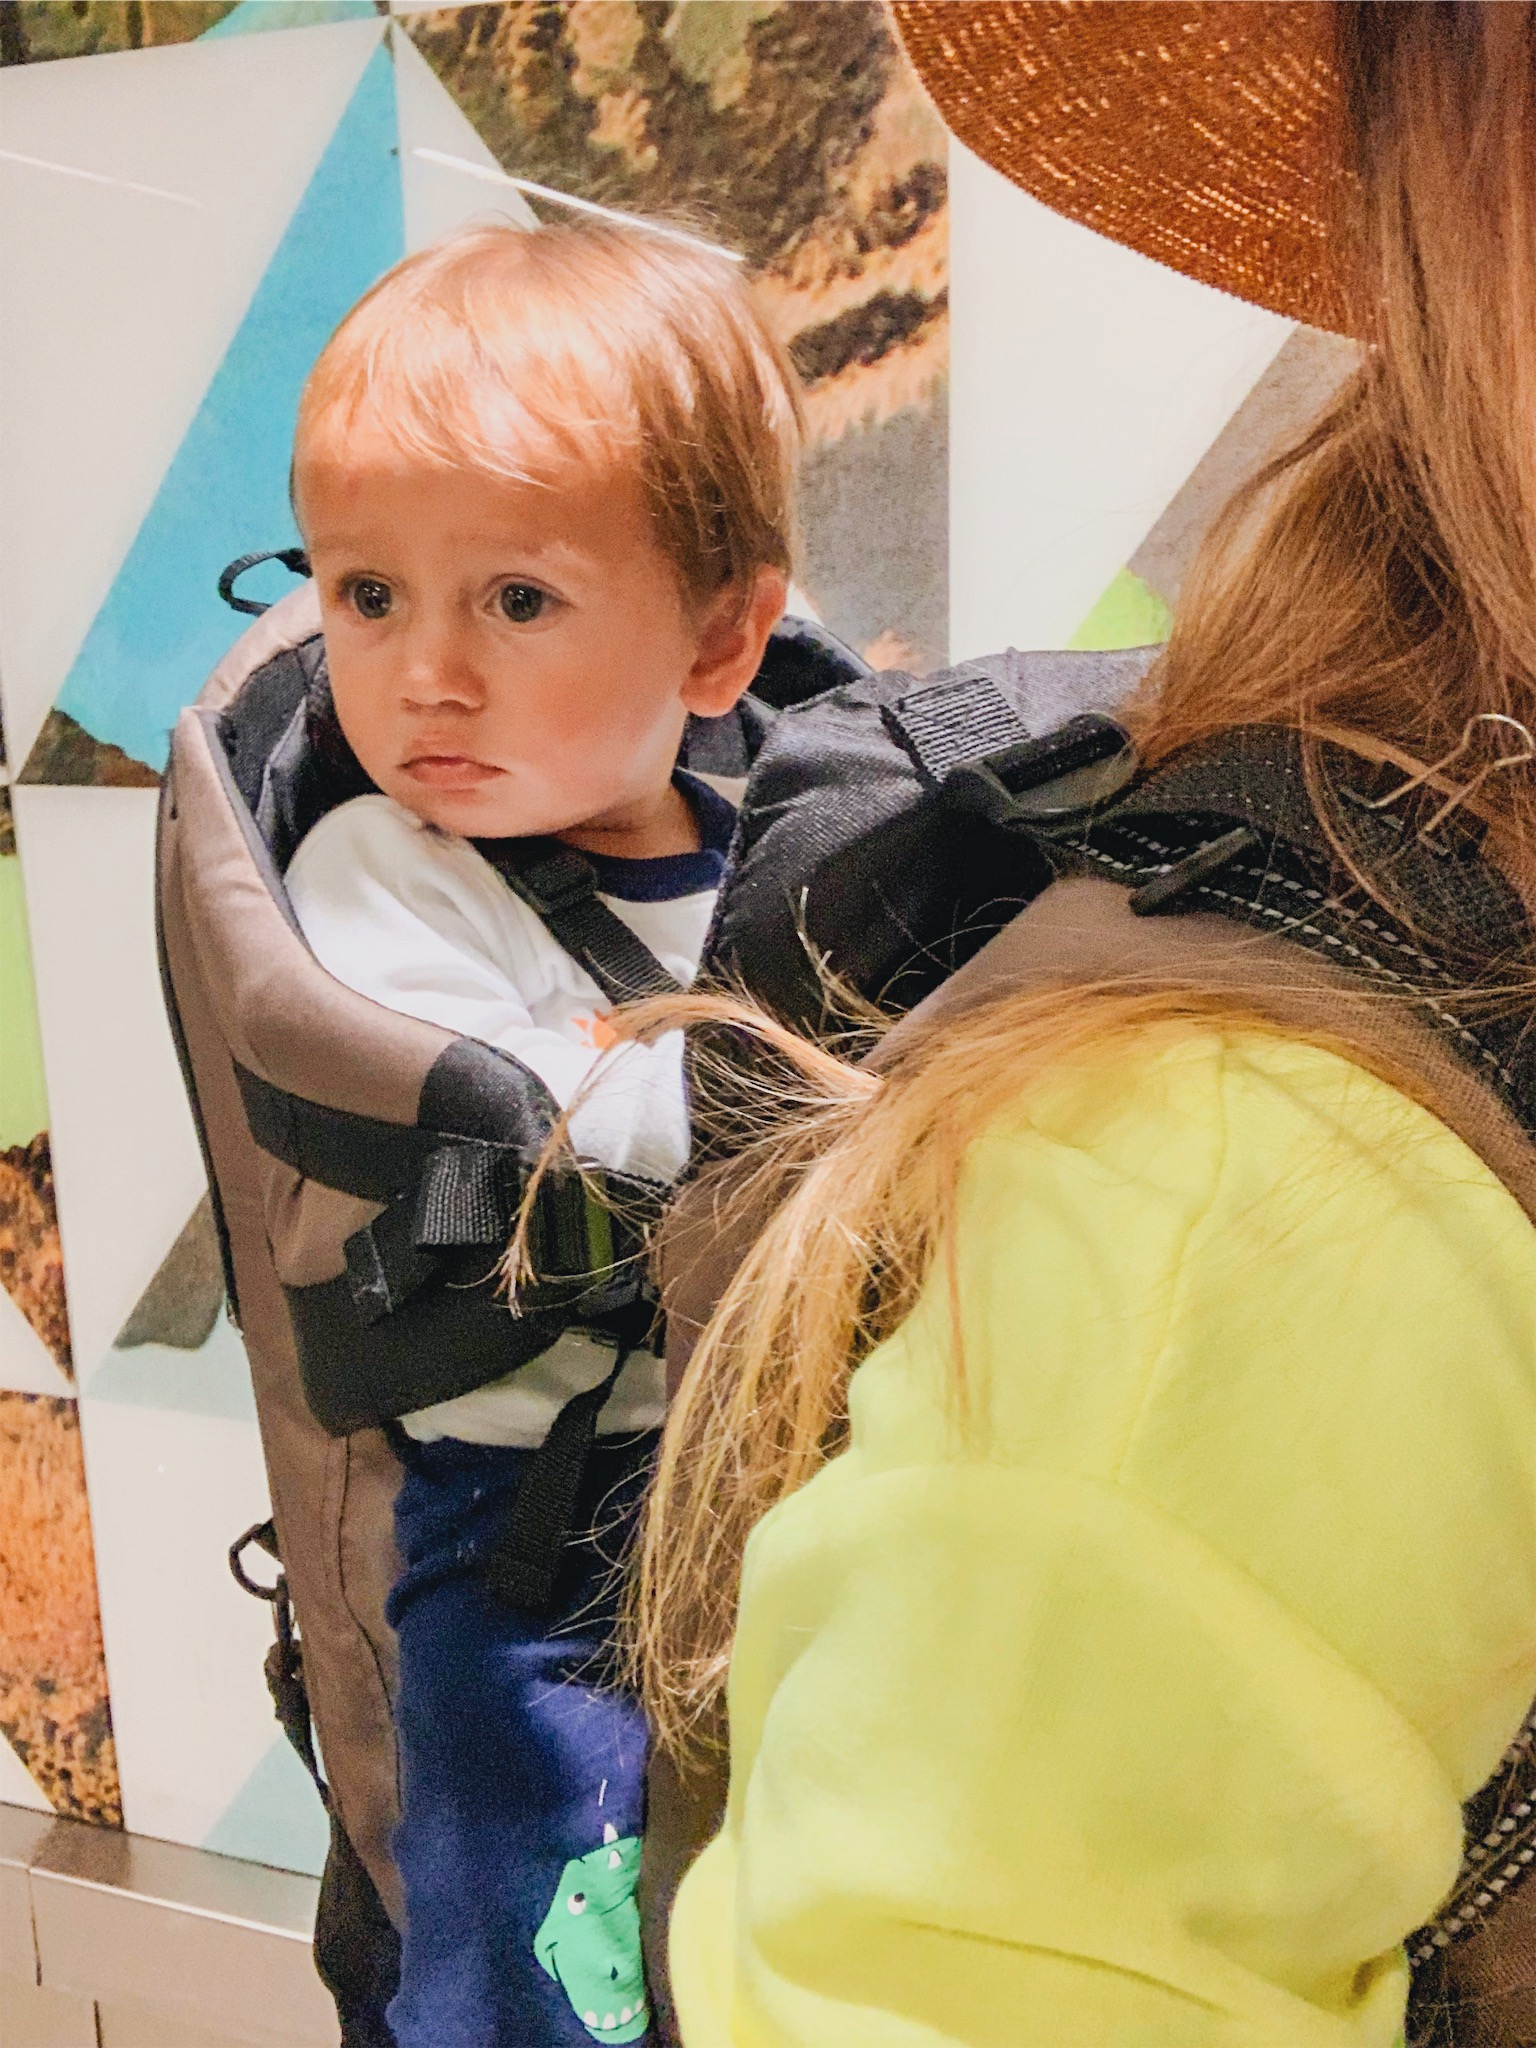 Hacks for traveling with a toddler & how to make it though an airport